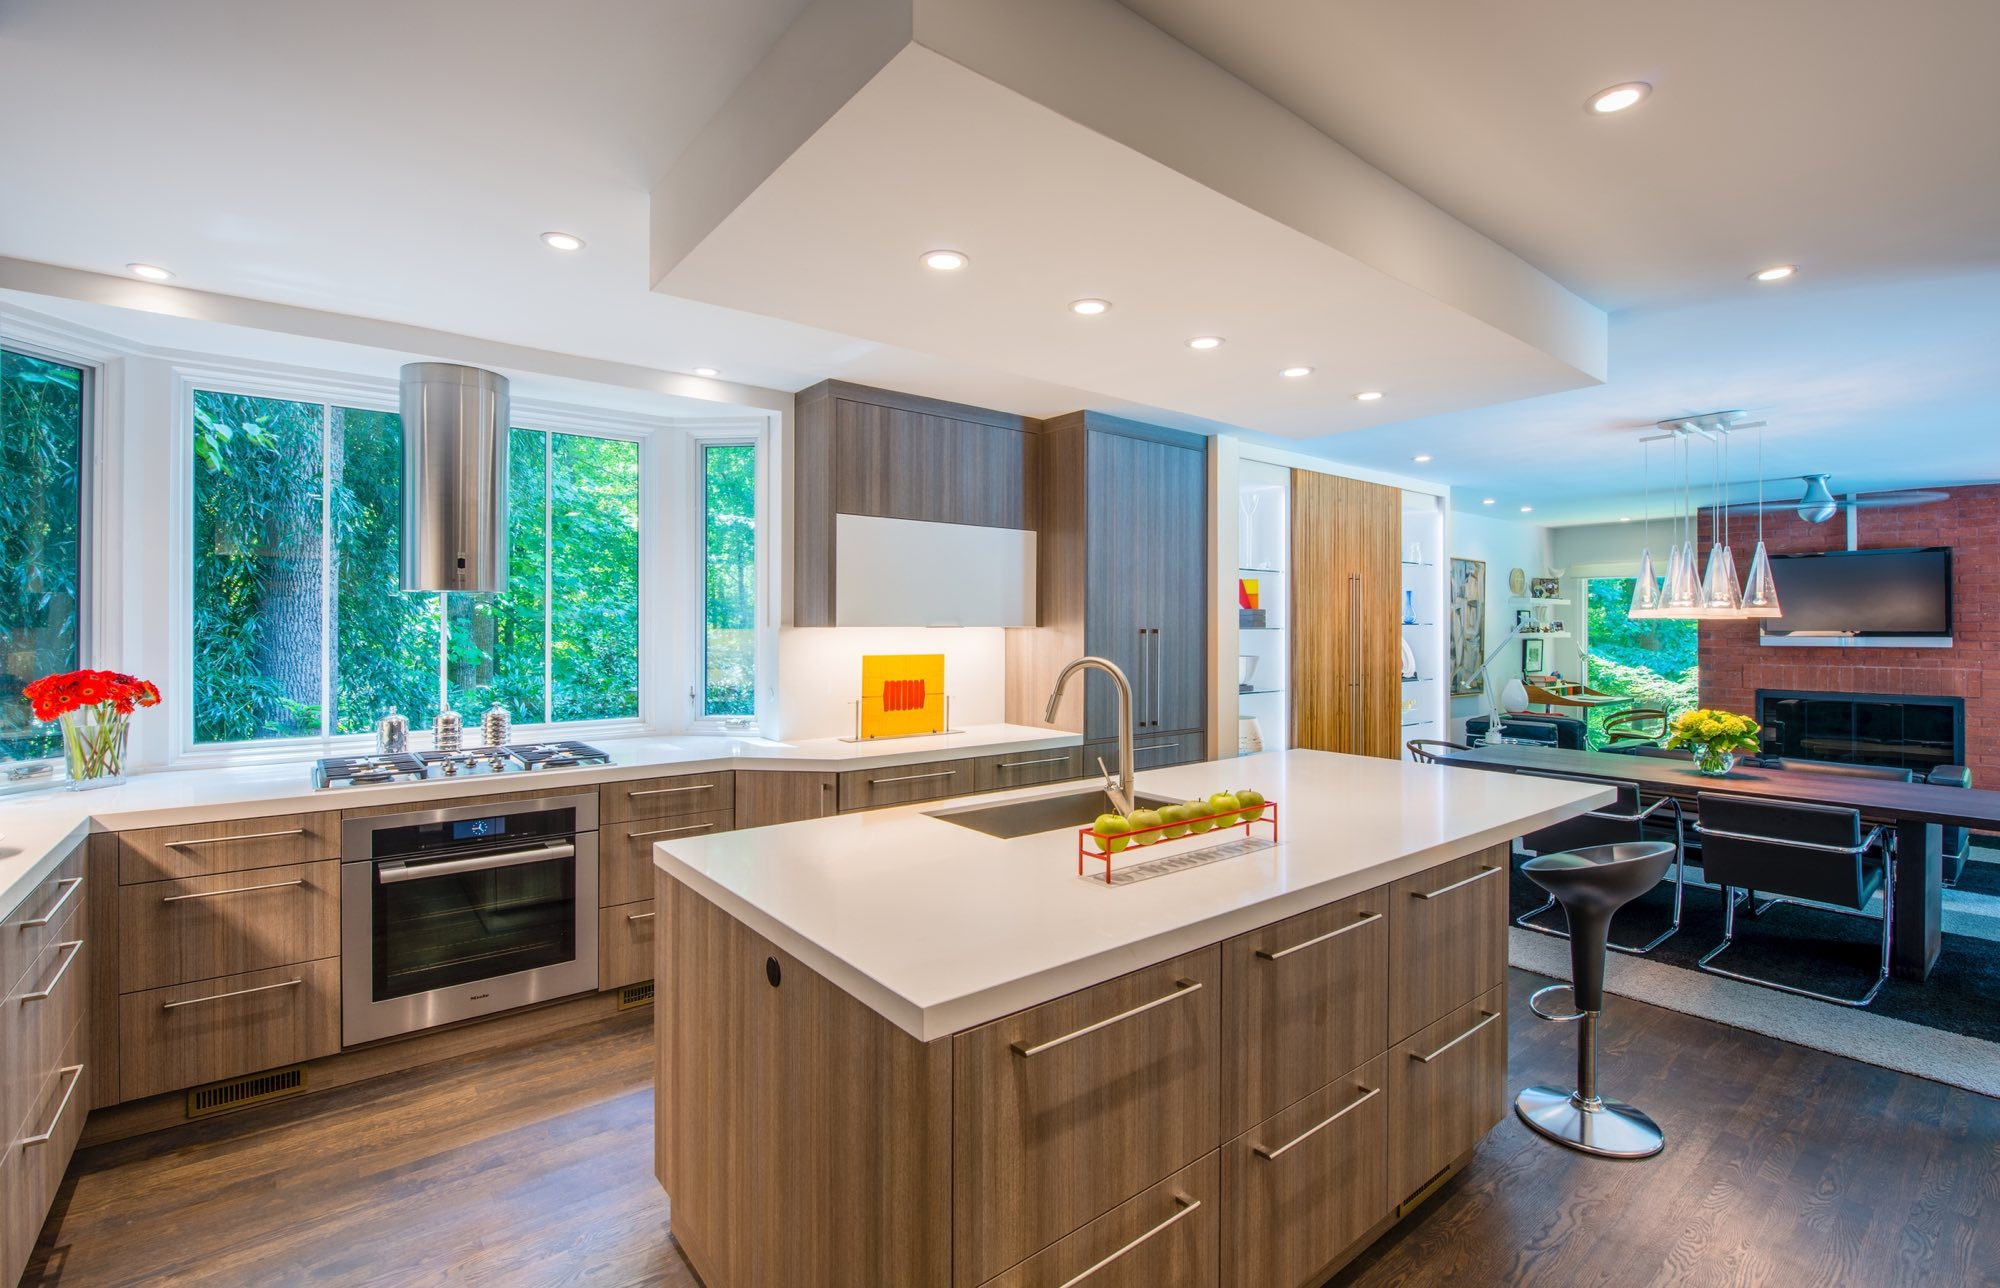 Kitchen and dining room renovation with light brown woods and white quartz counters